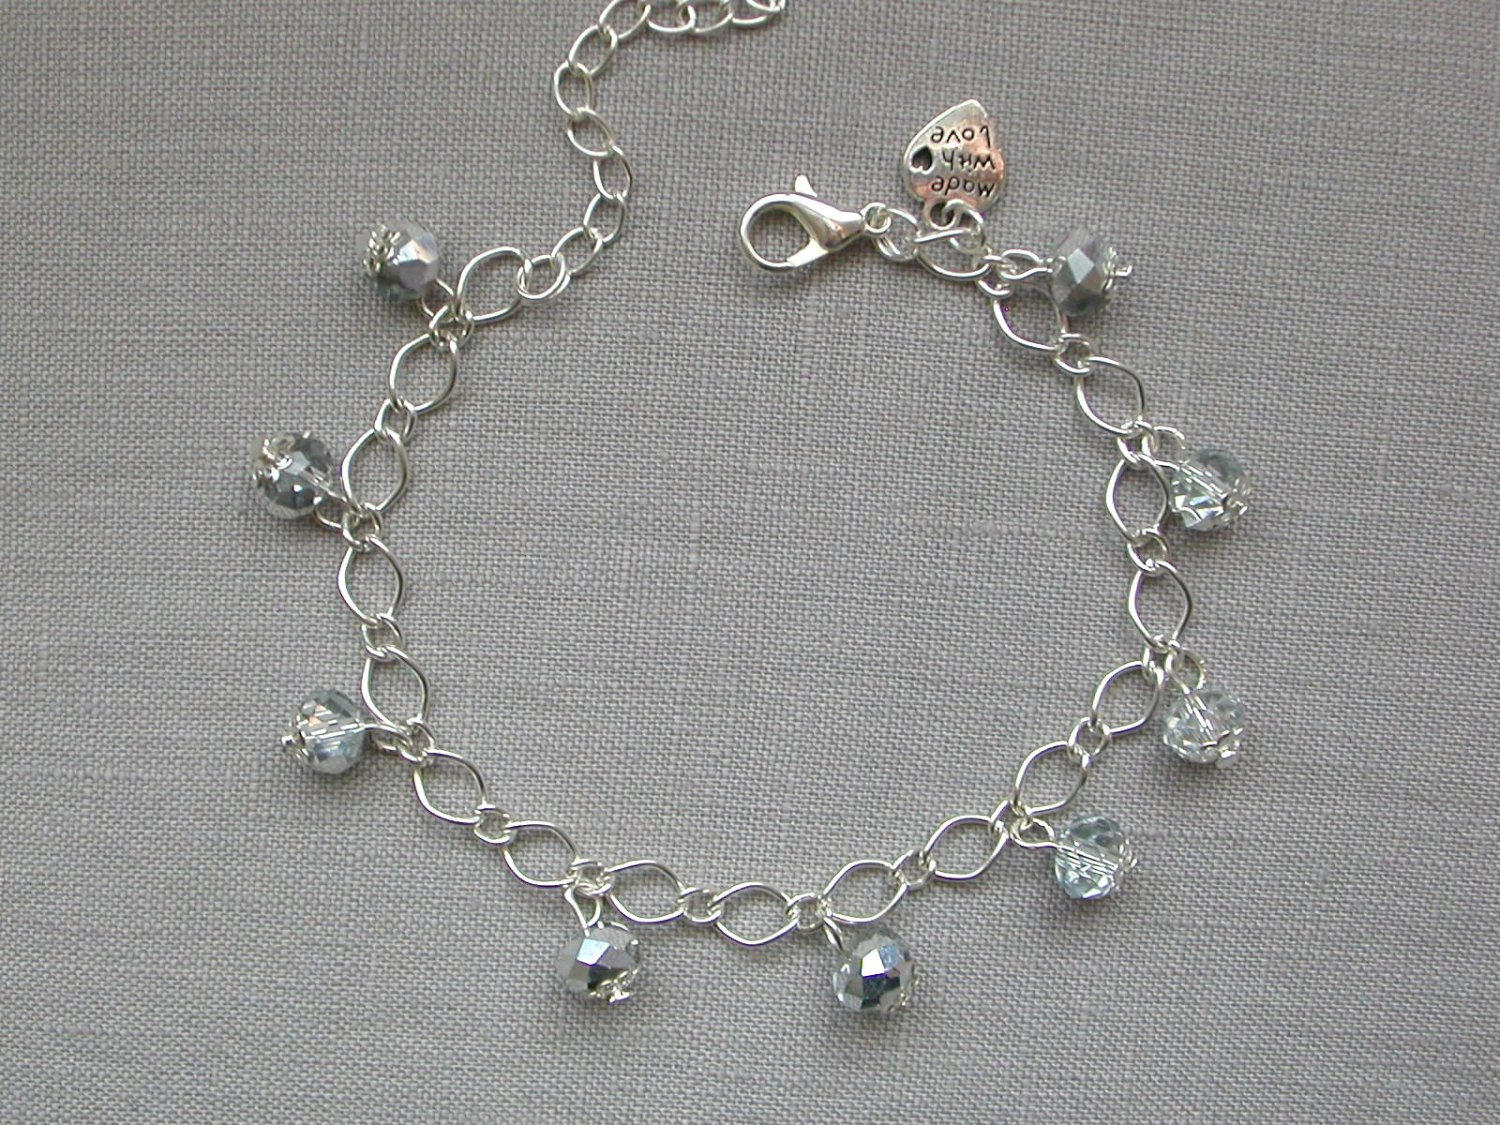 Crystal Bead Chain Link Bracelet Your Choice in Colors DIY